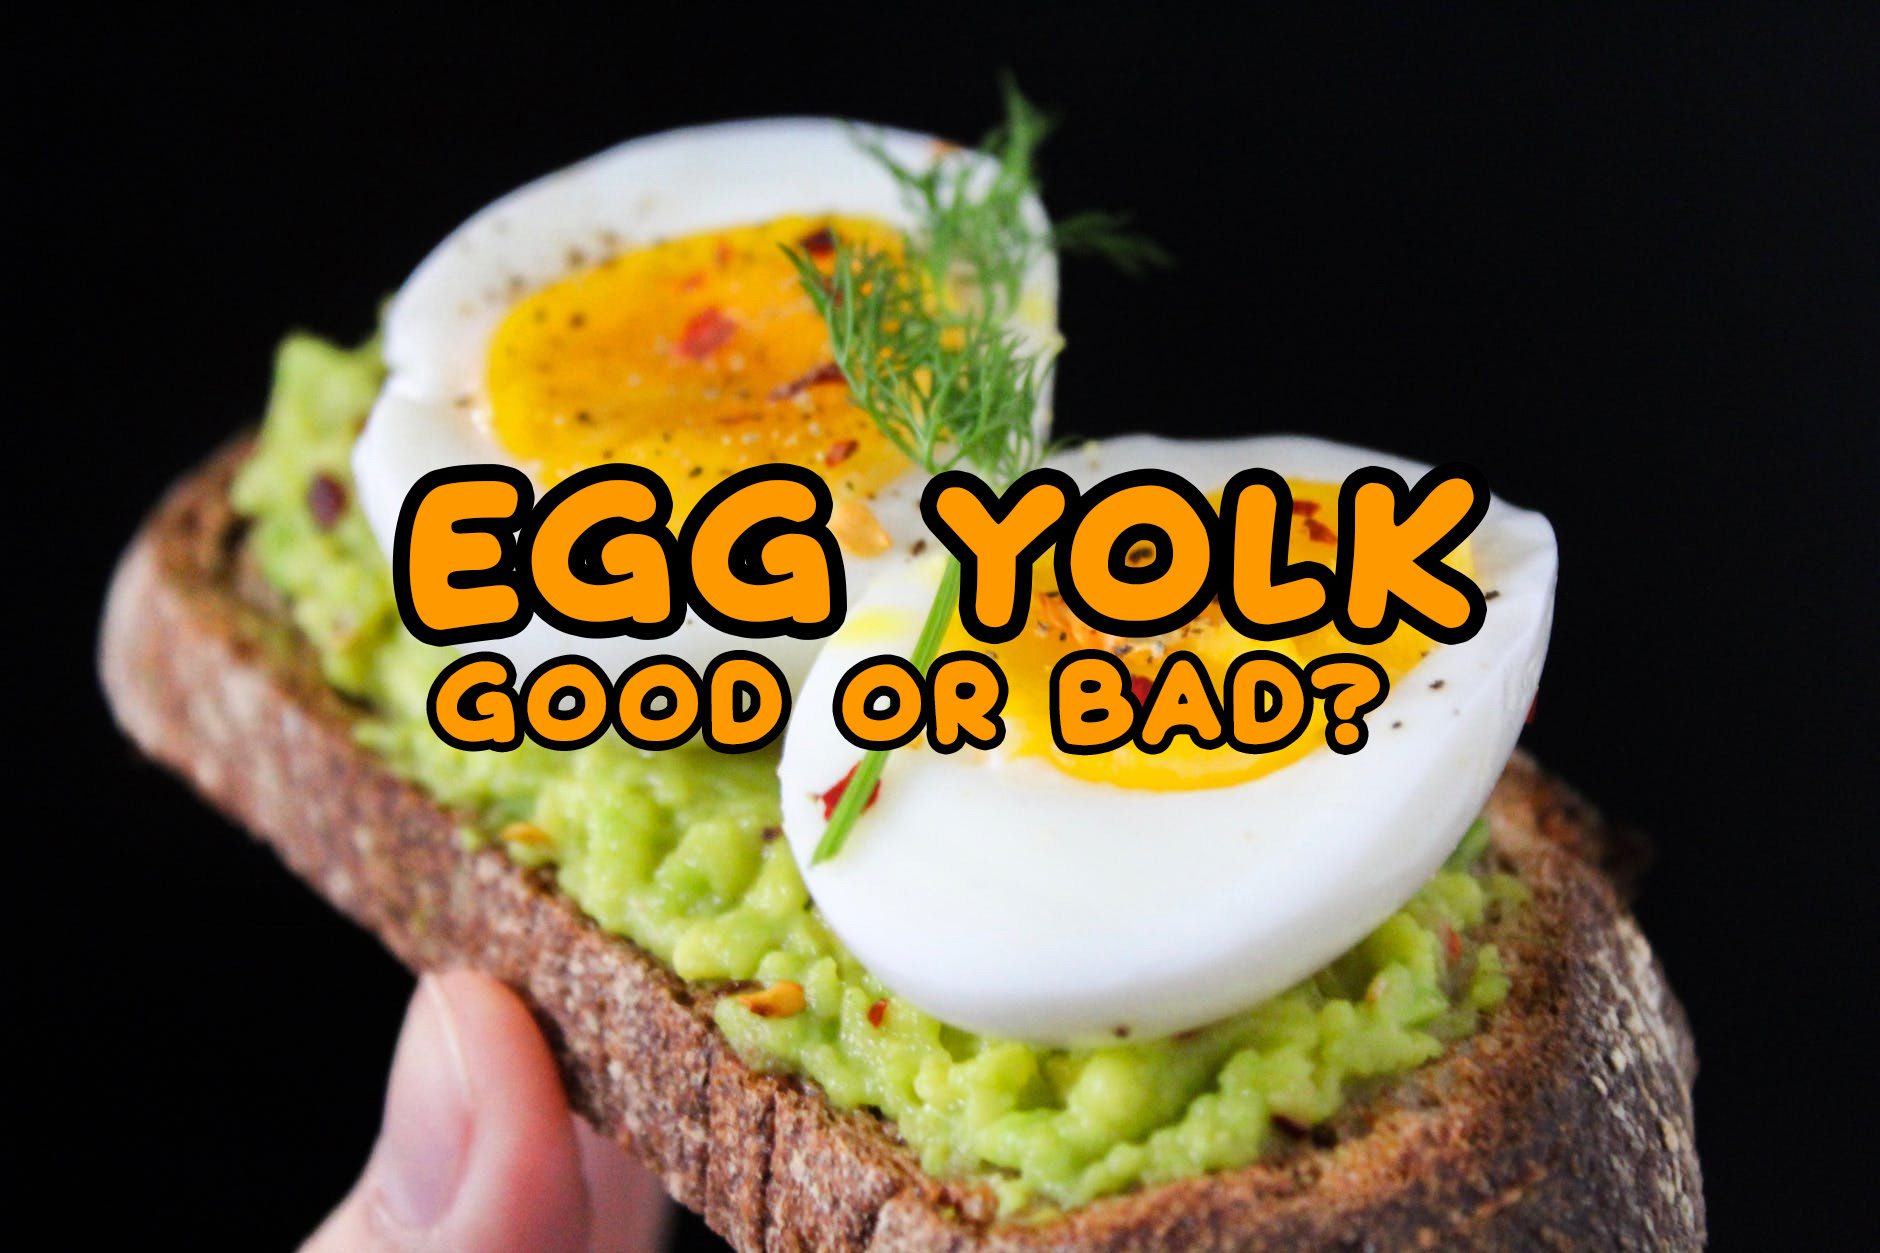 Is Egg Yolk Bad For You?